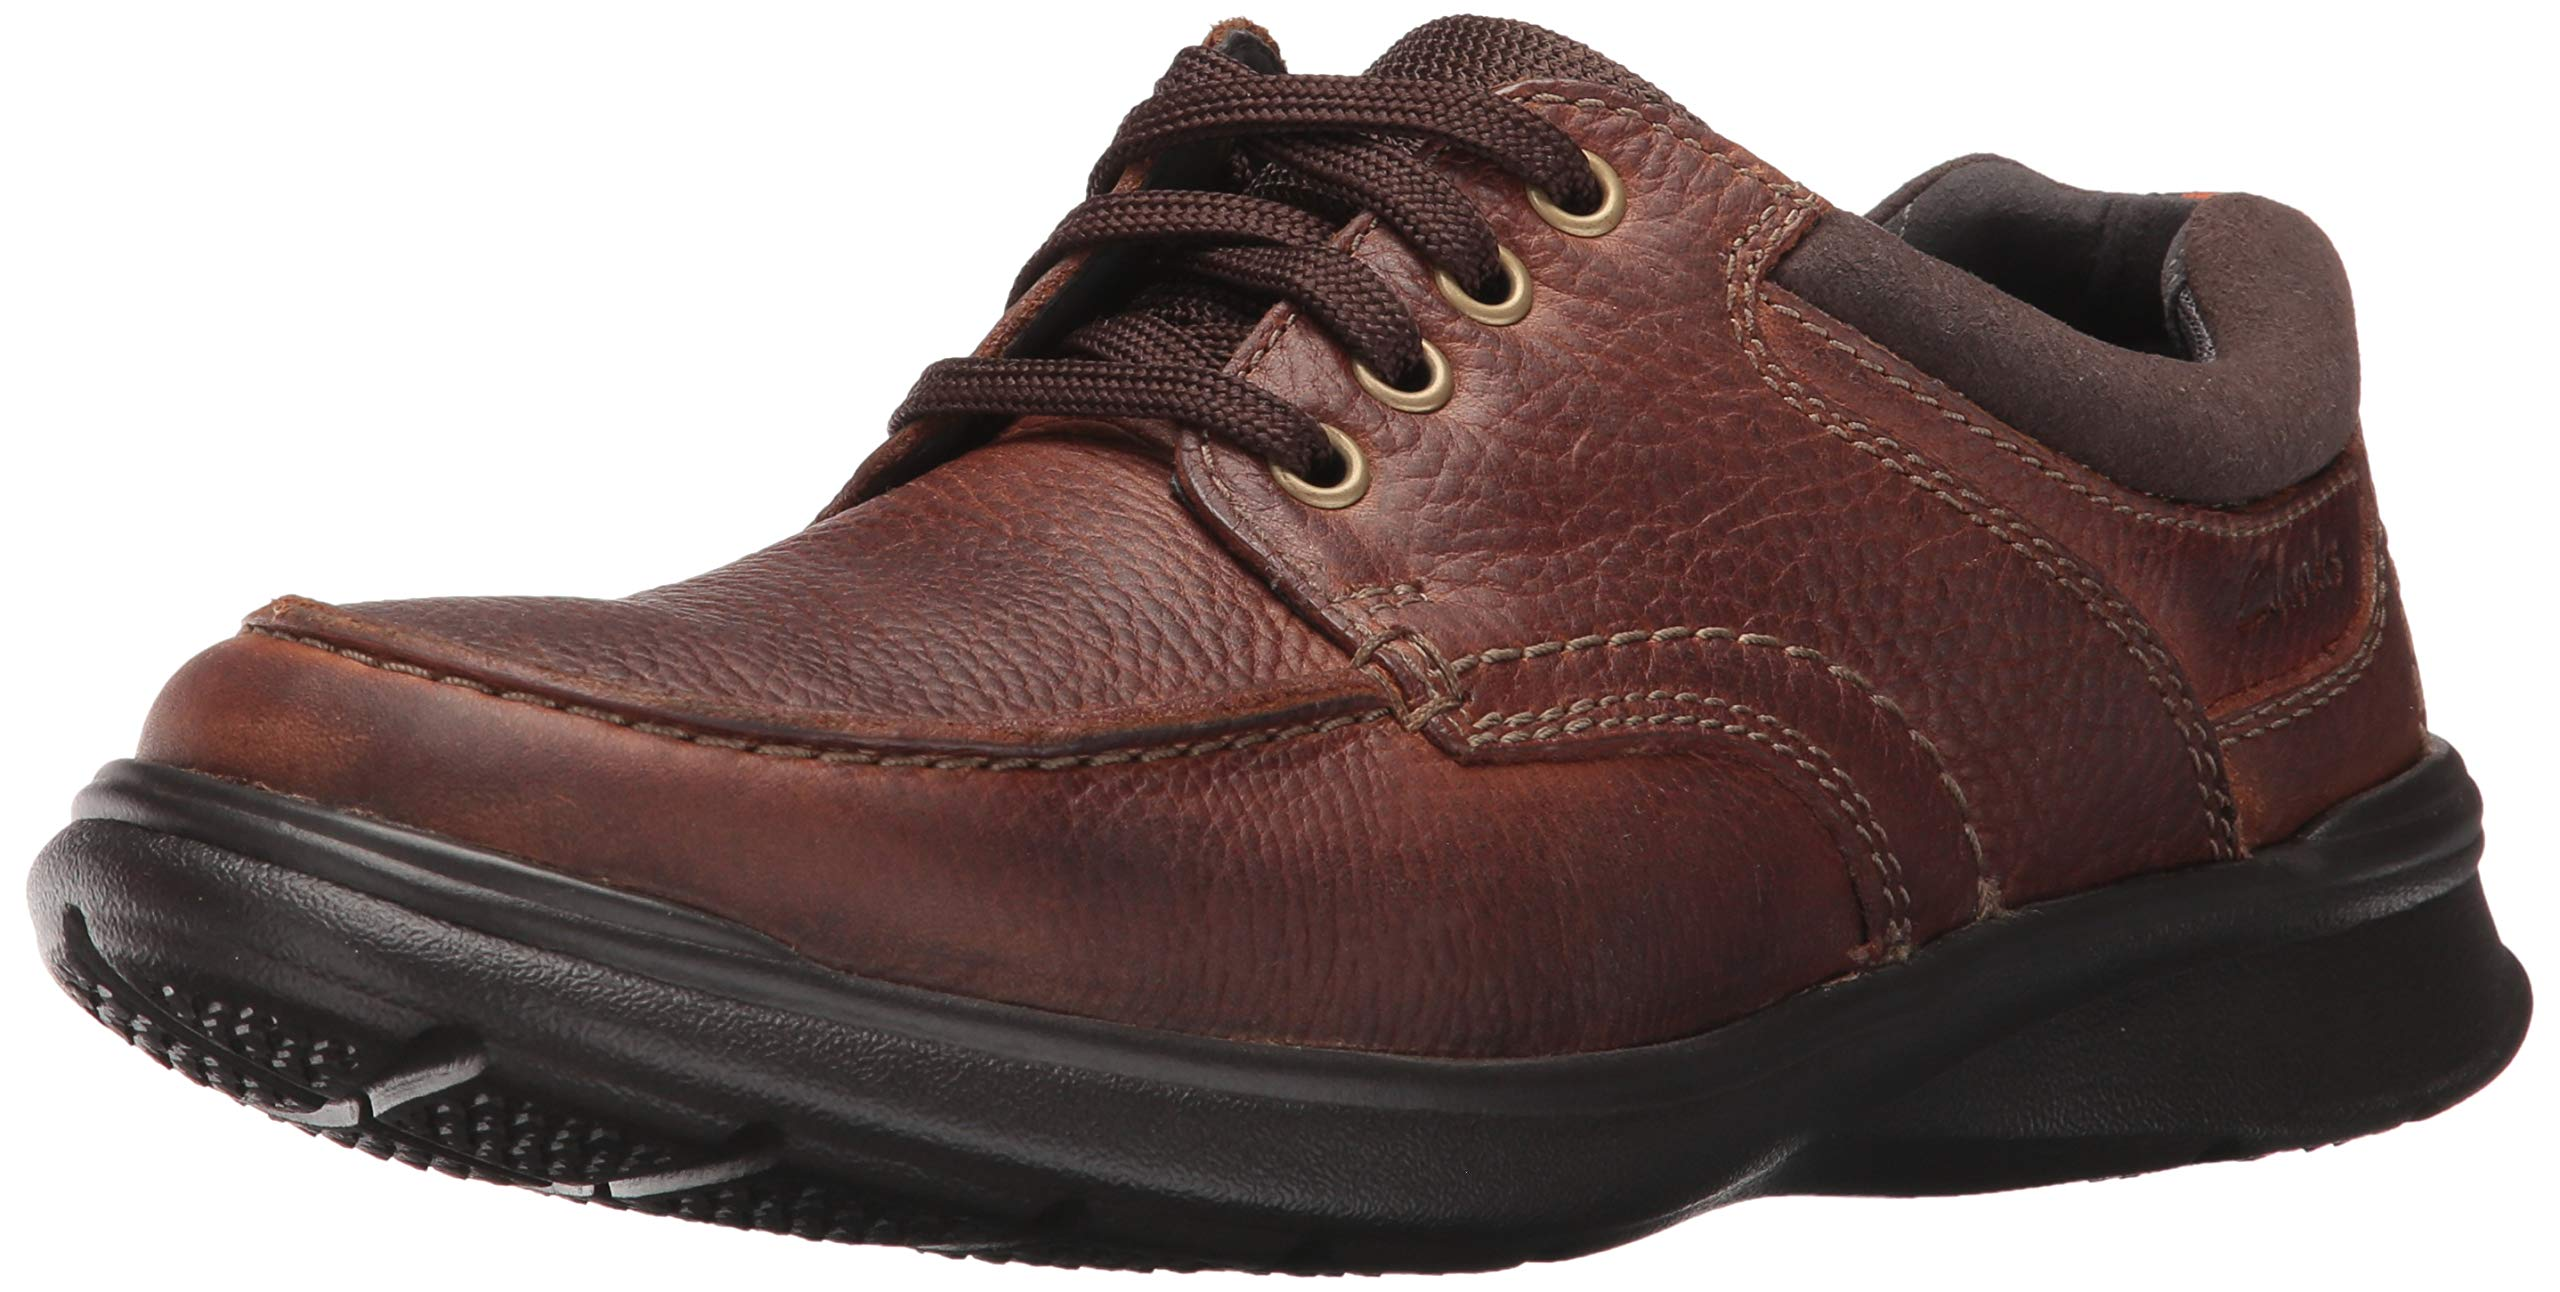 Clarks Men's Cotrell Edge Oxford, Tobacco Oily Leather, 10.5 W US